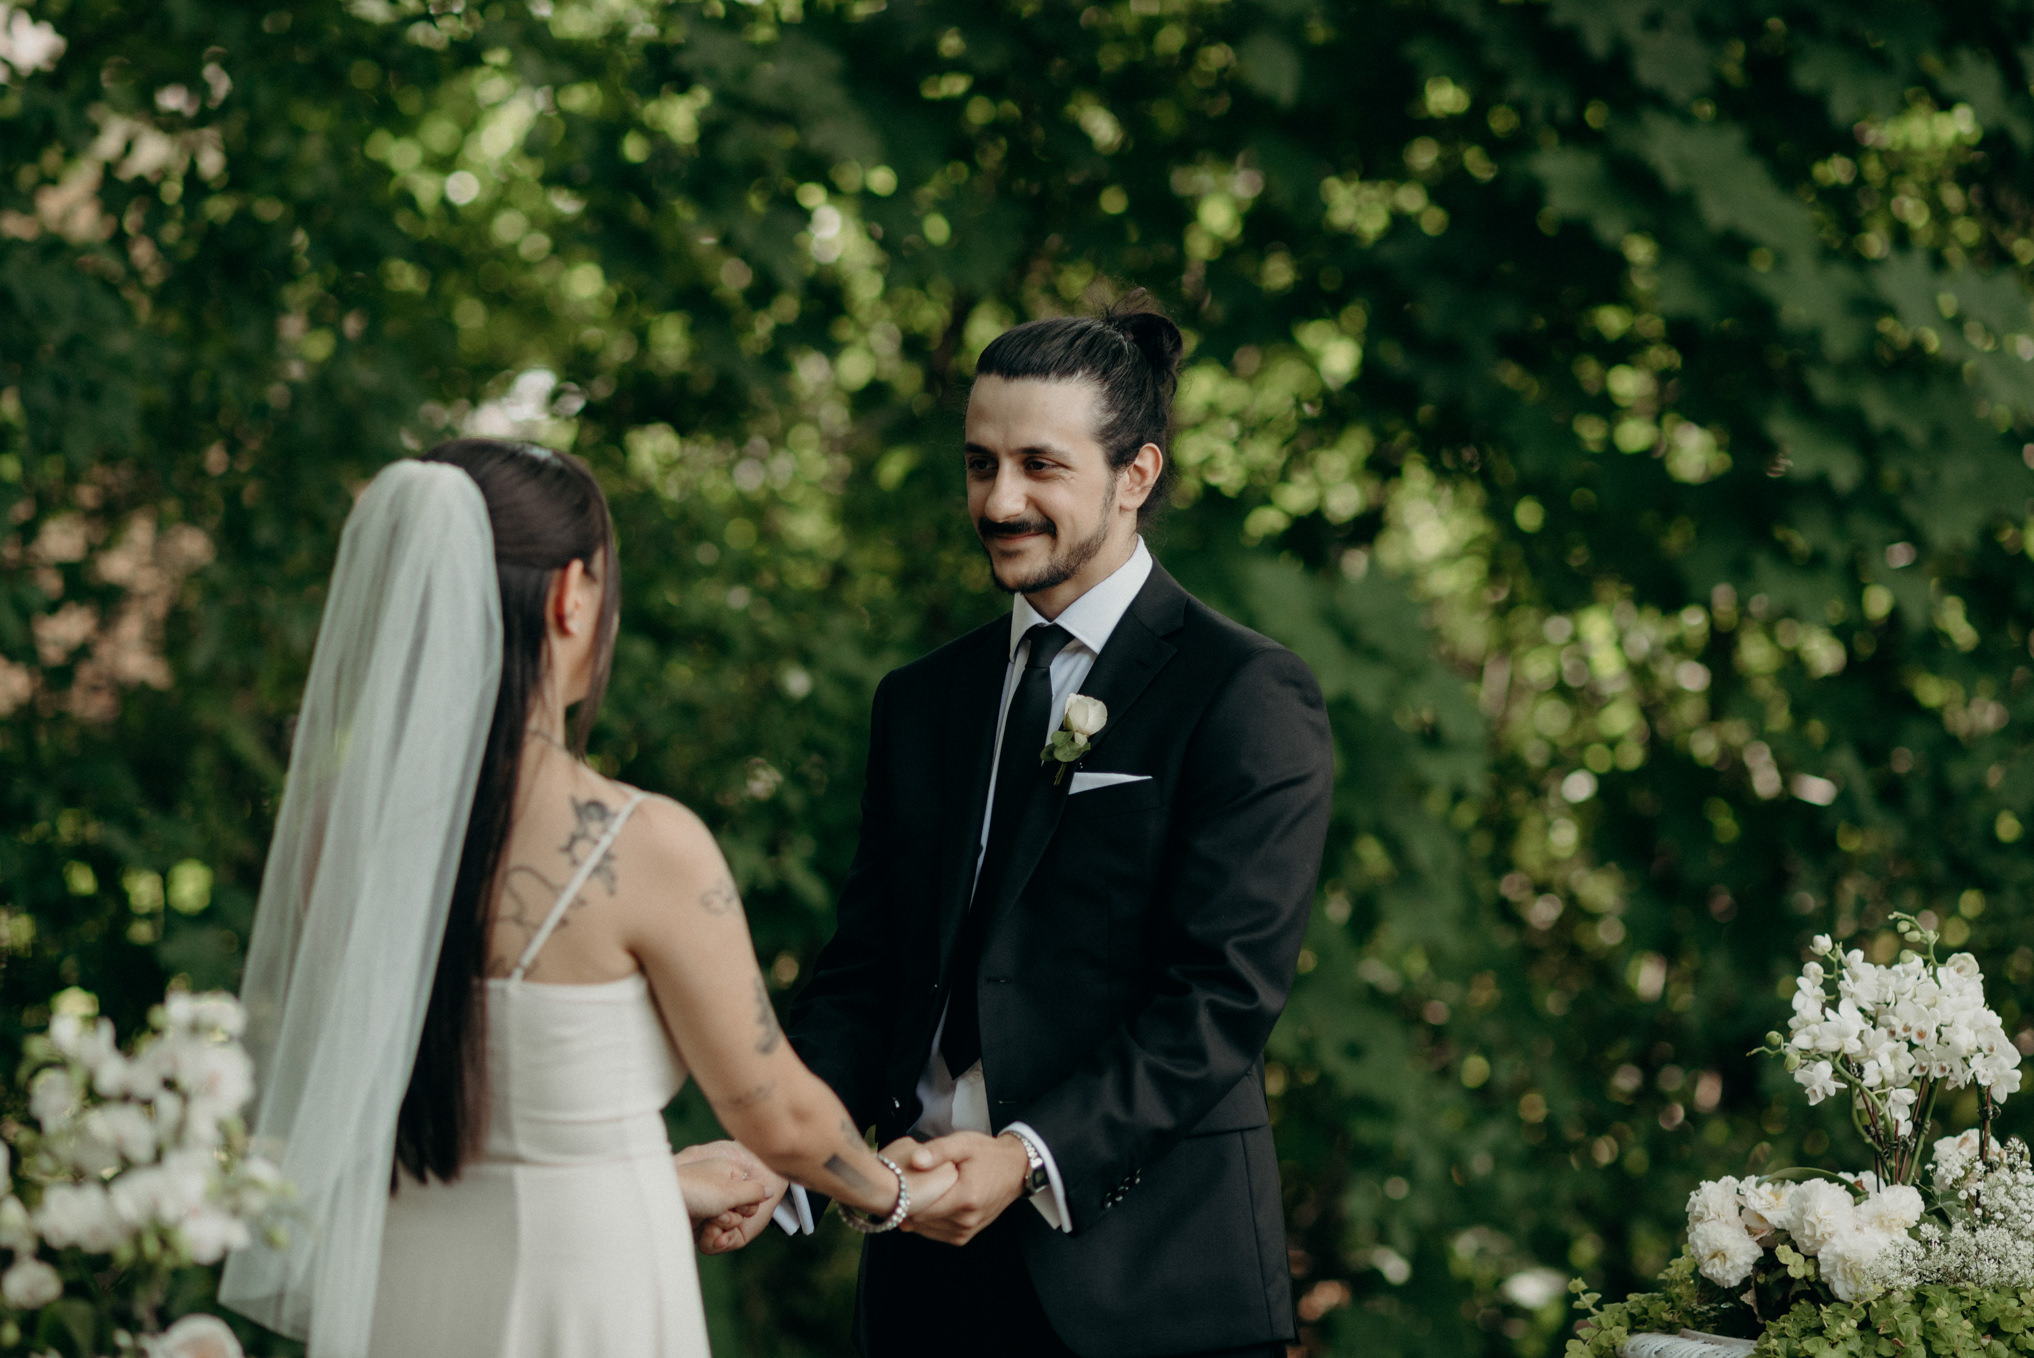 Groom smiling at bride during backyard wedding ceremony